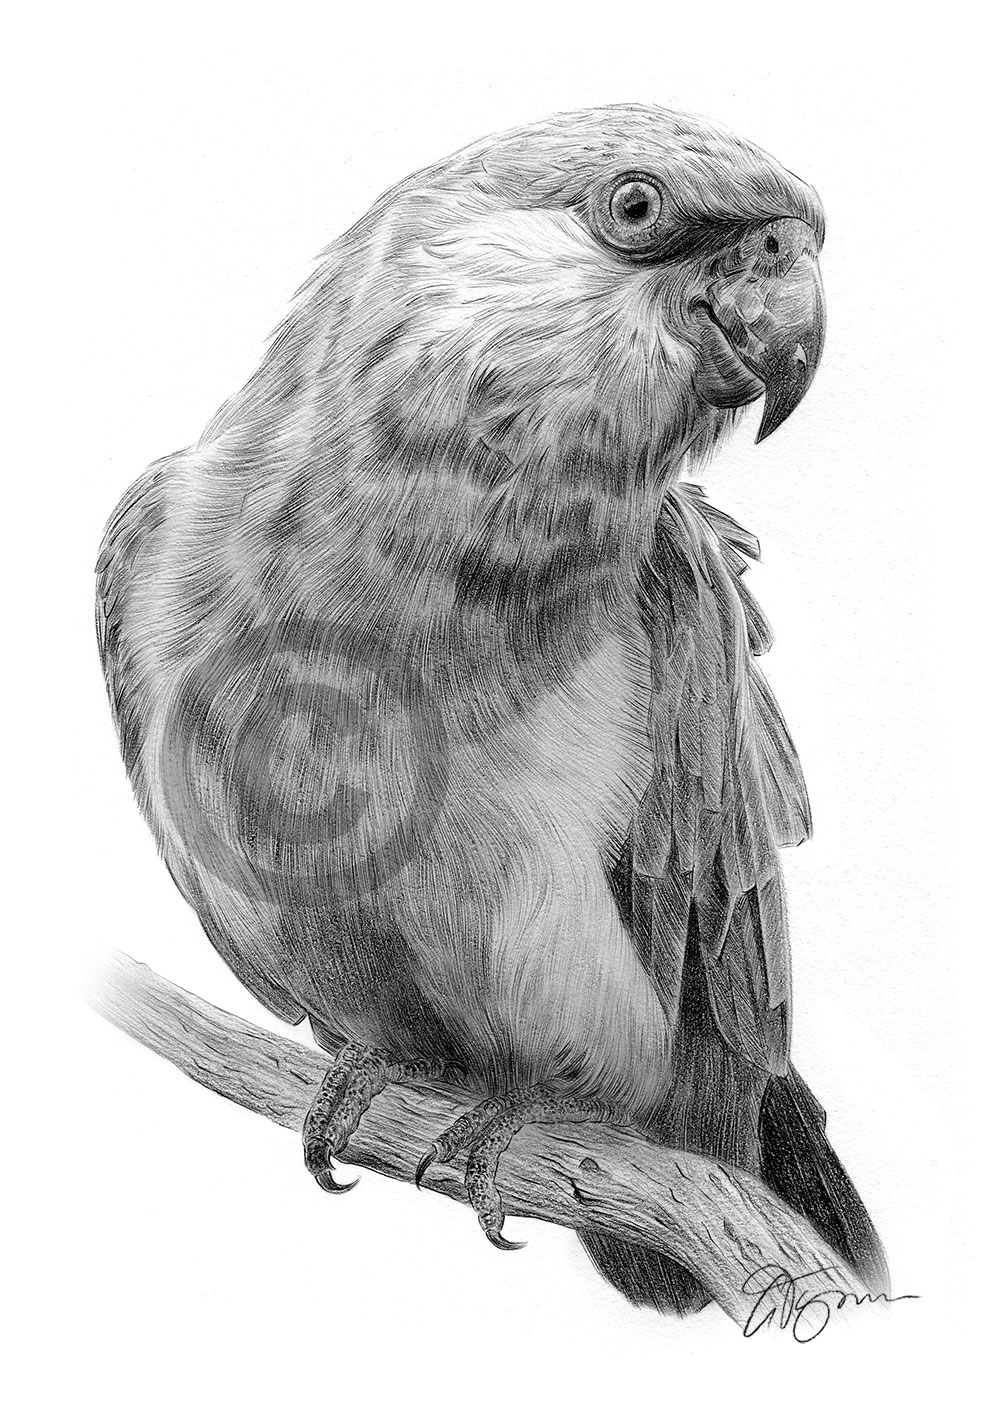 Parrot pencil drawing by artist Gary Tymon